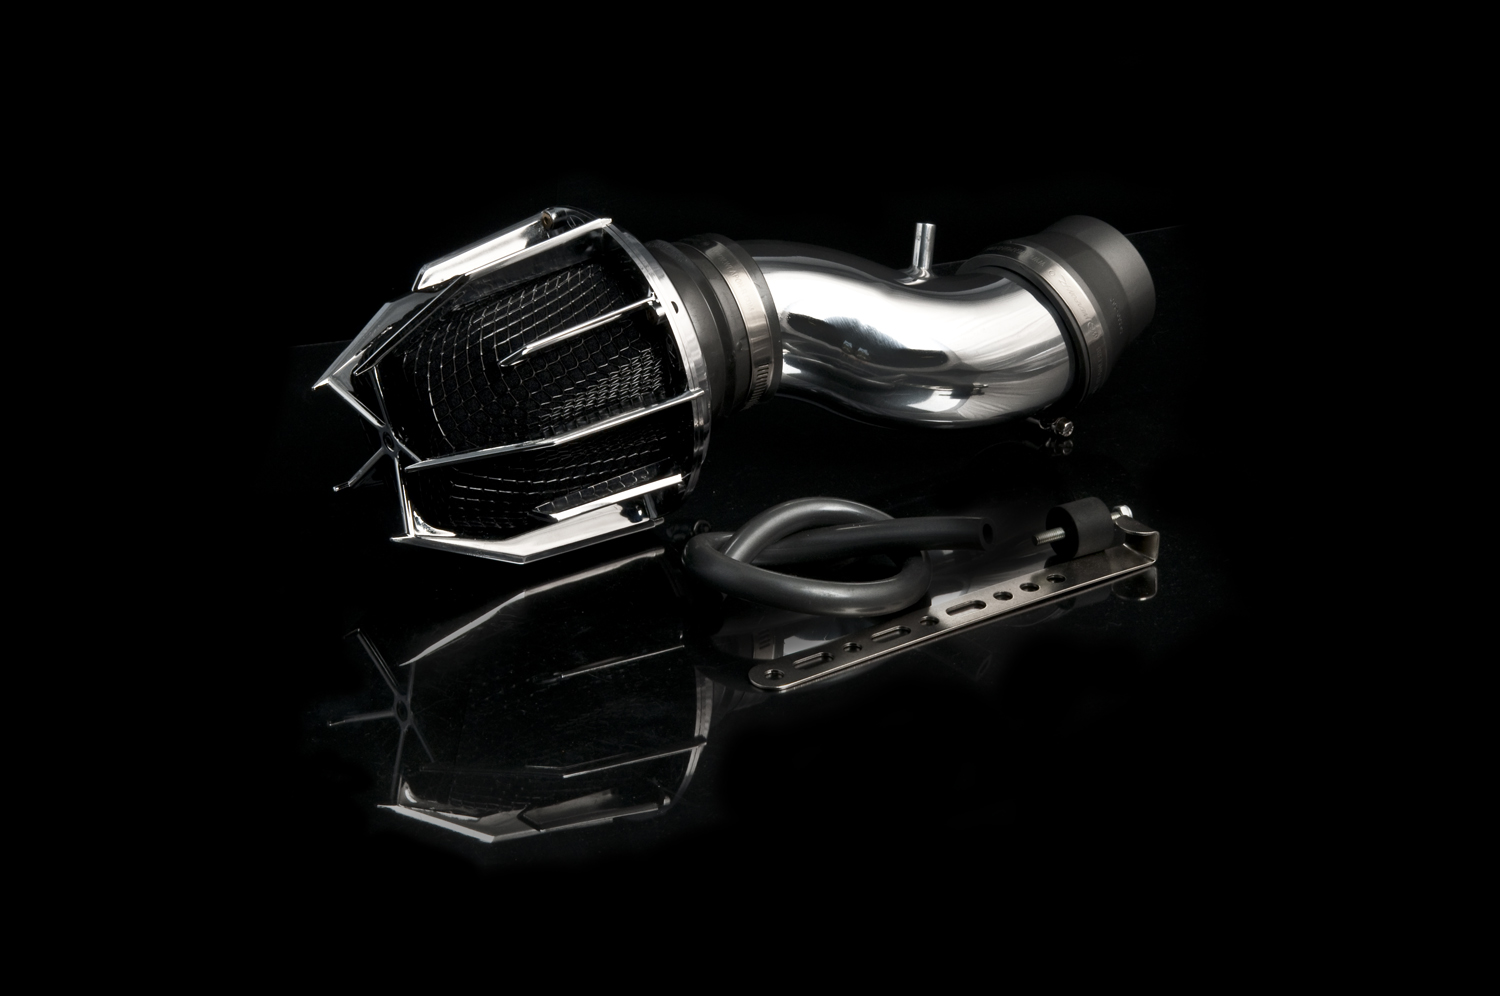 Toyota Corolla 1.6l & 1.8l 1990-1997 Weapon-R Dragon Air Intake